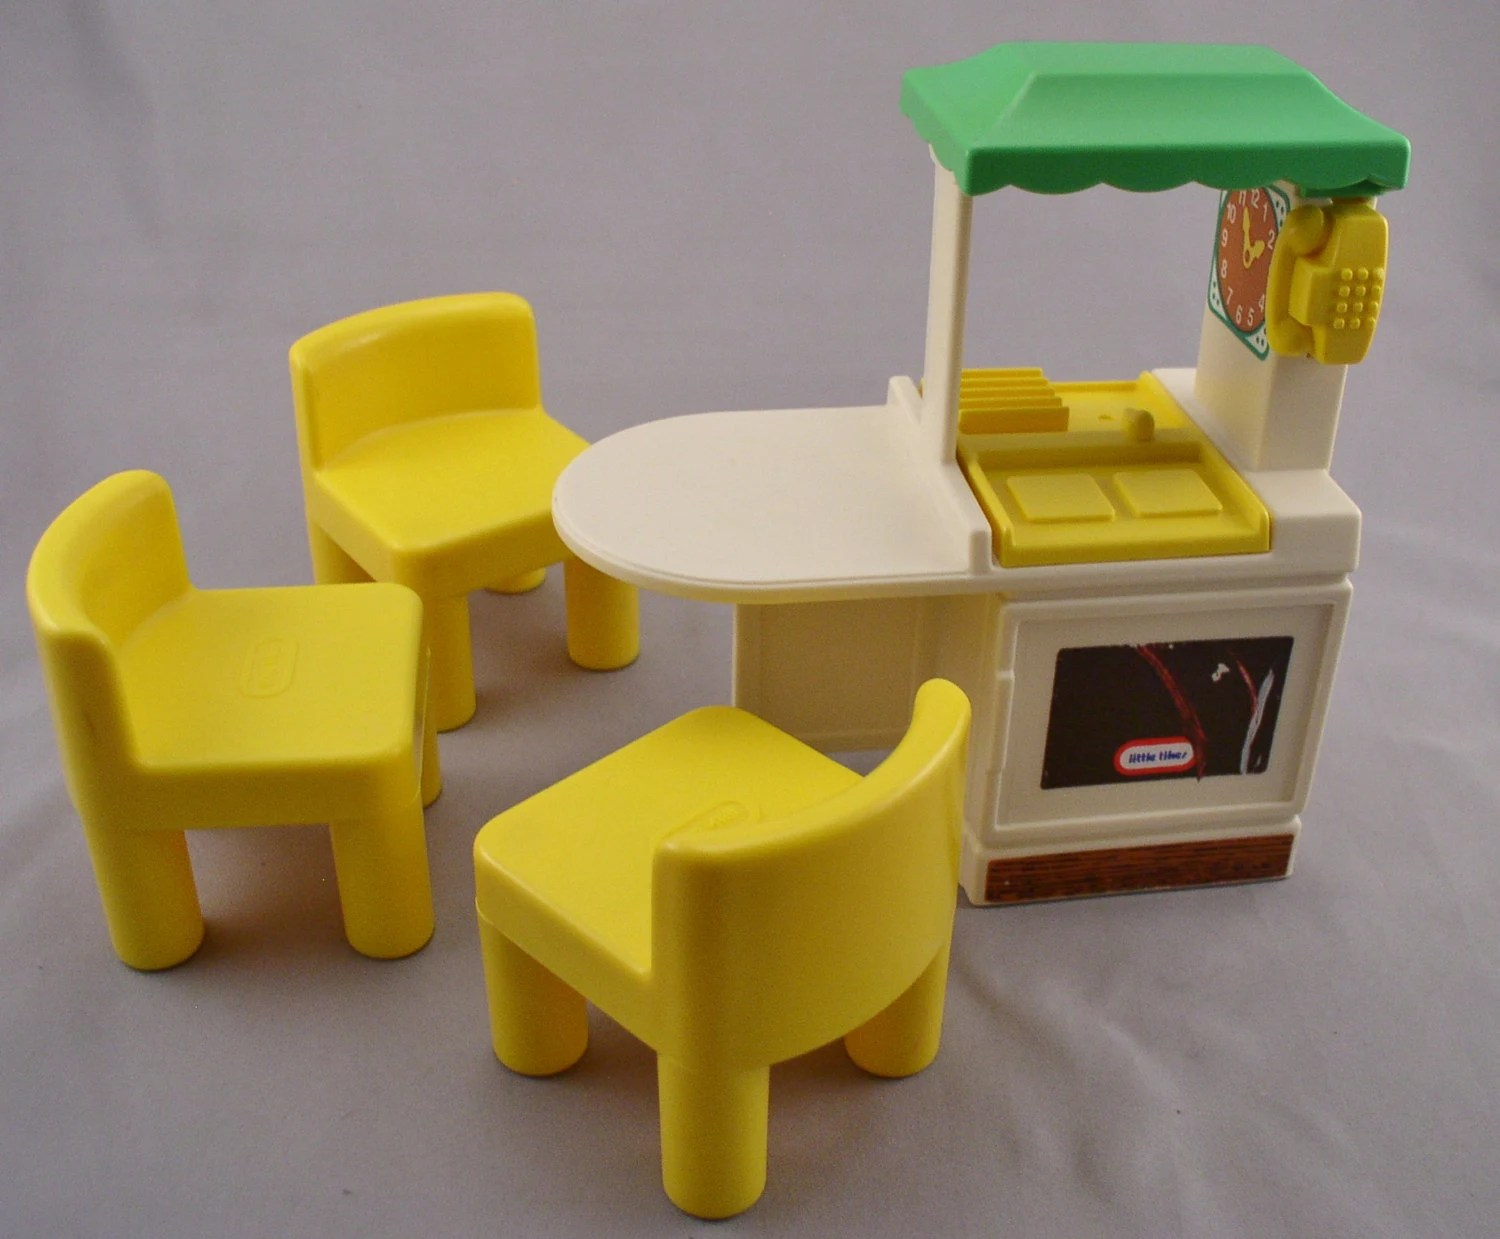 little tikes chairs diy lawn chair cushions kitchen and 3 dollhouse size 4 pieces